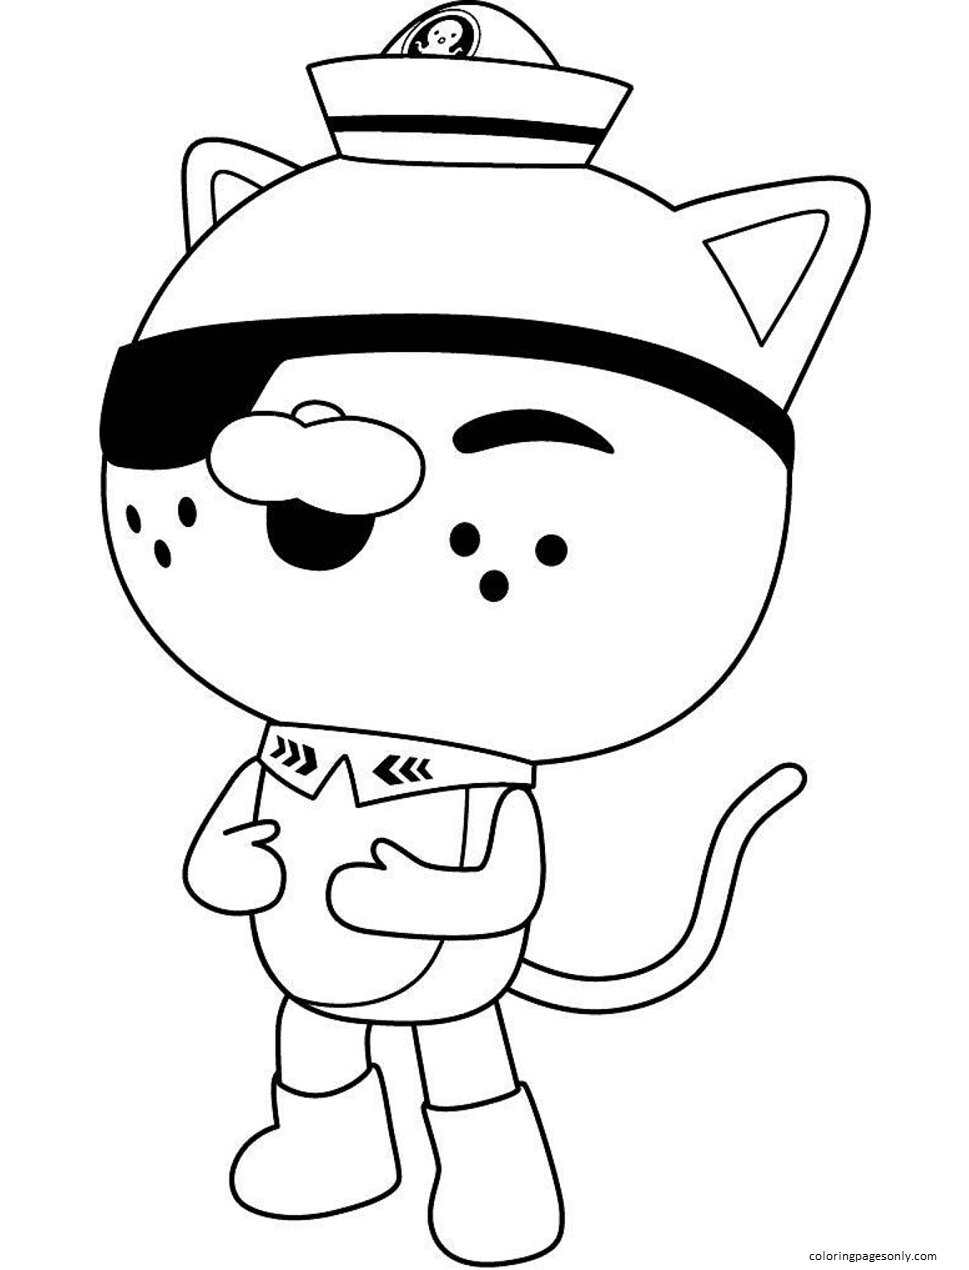 Happy Kwazii Coloring Page